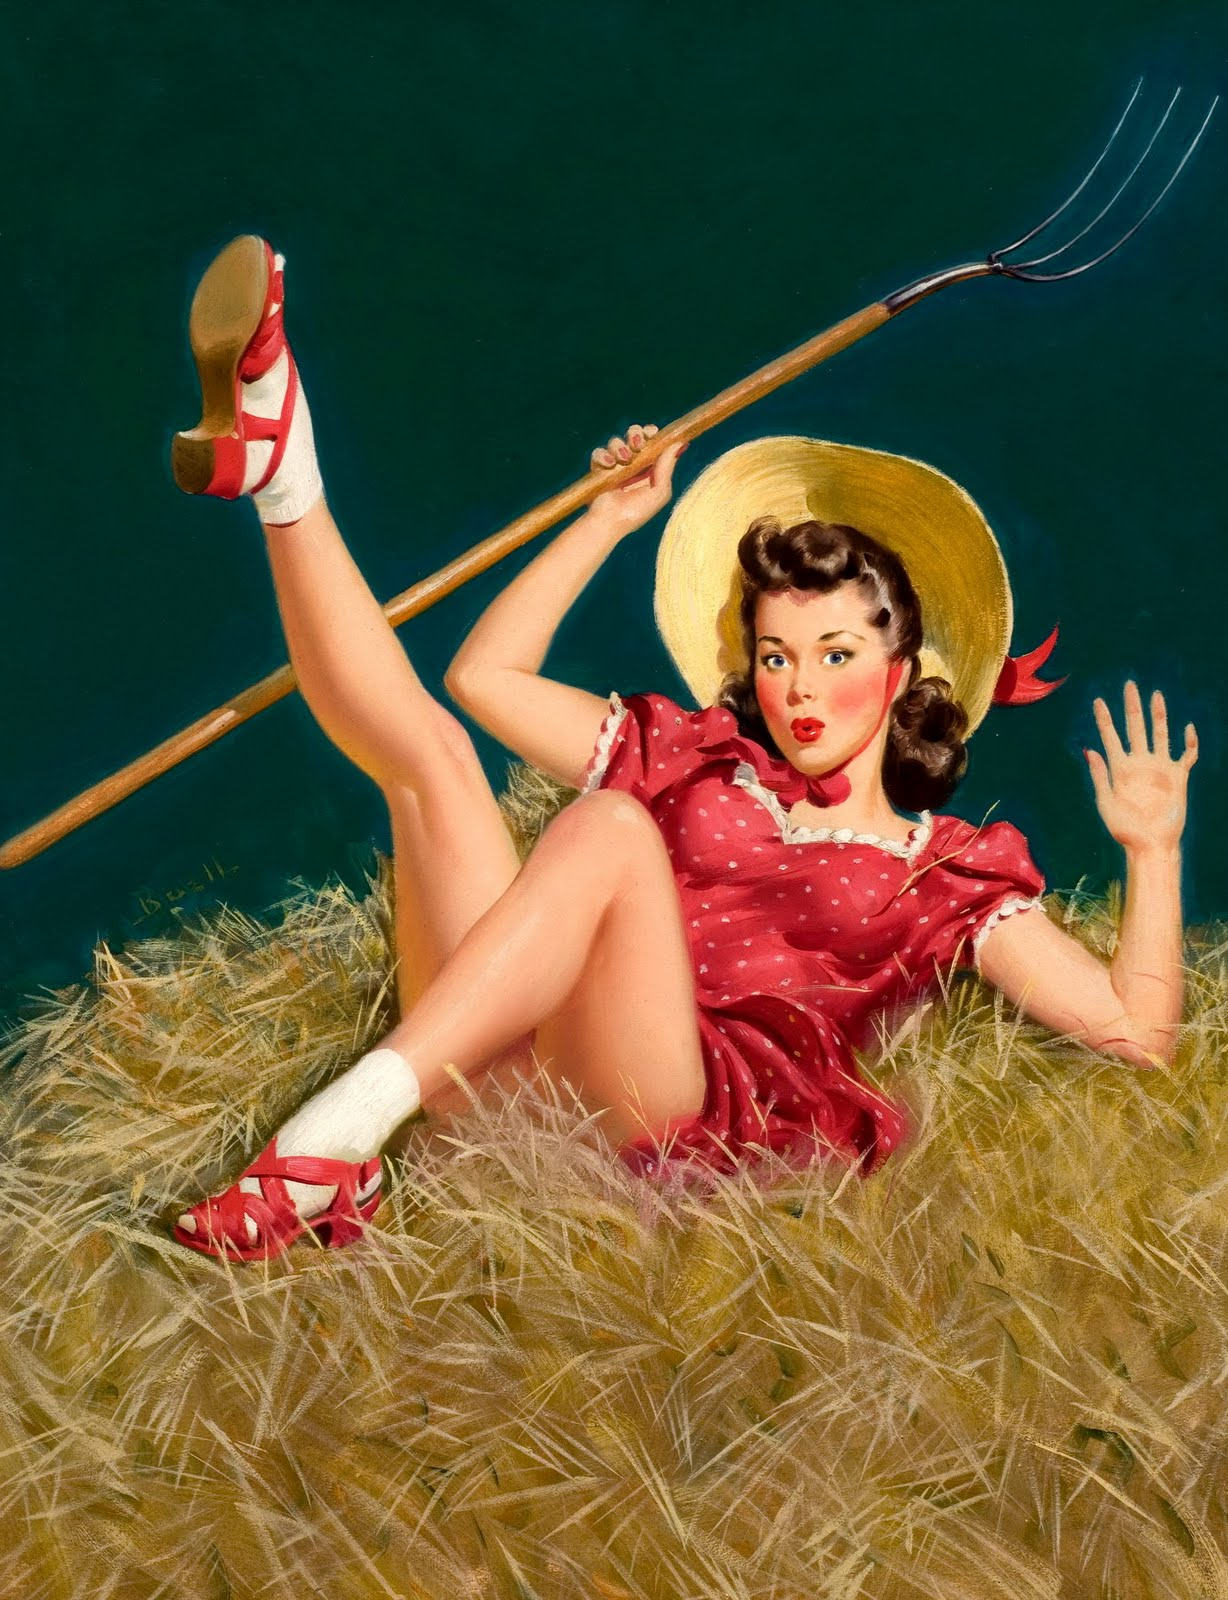 Pin Up and Cartoon Girls: www.pinupcartoongirls.com/2011/05/classic-american-pin-up-farm...